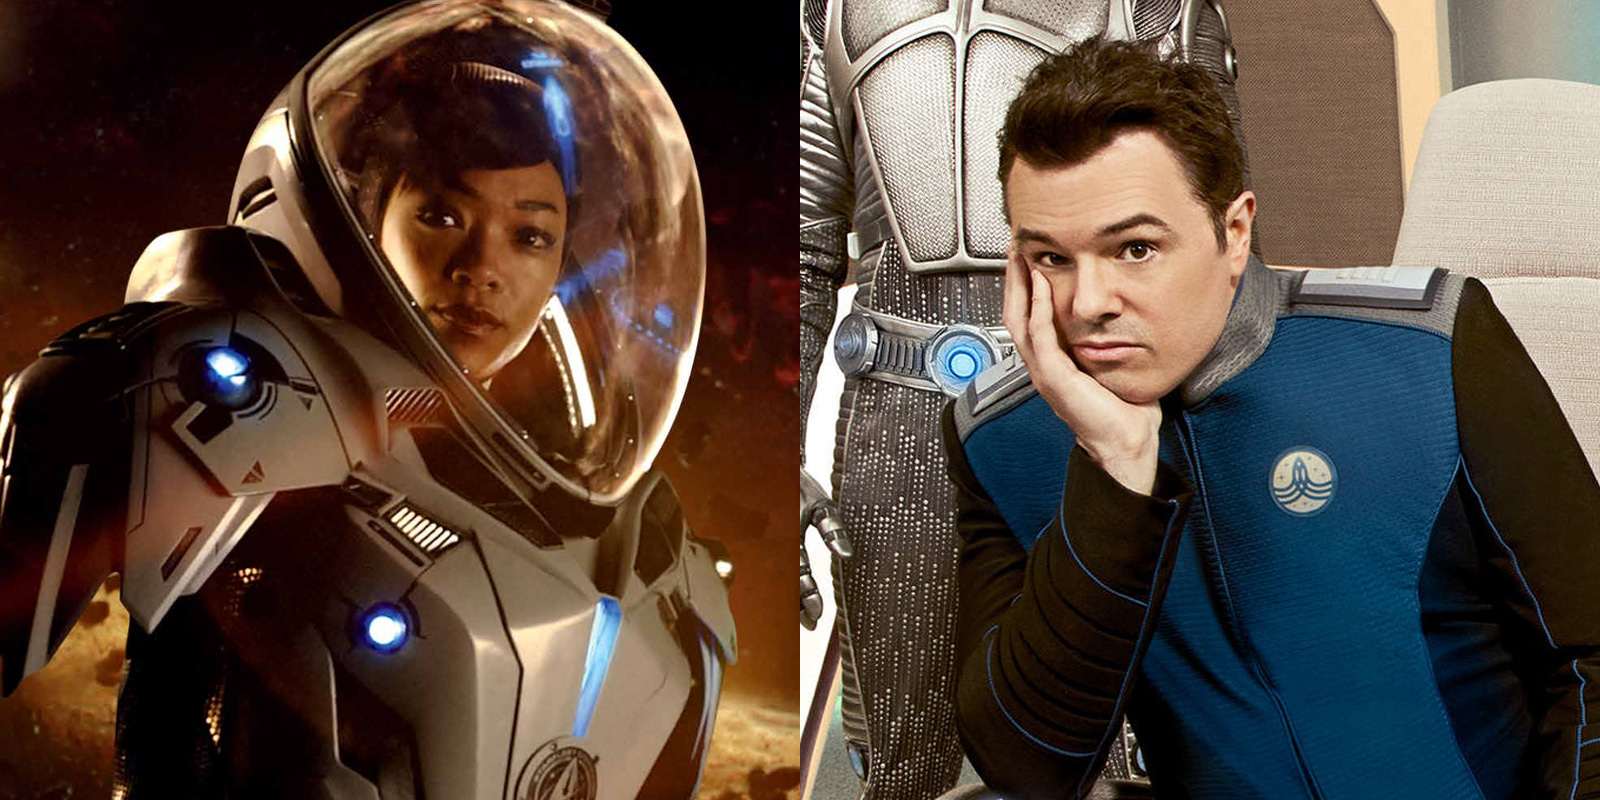 Sonequa Martin-Green in Star Trek: Discovery and Seth MacFarlane in The Orville